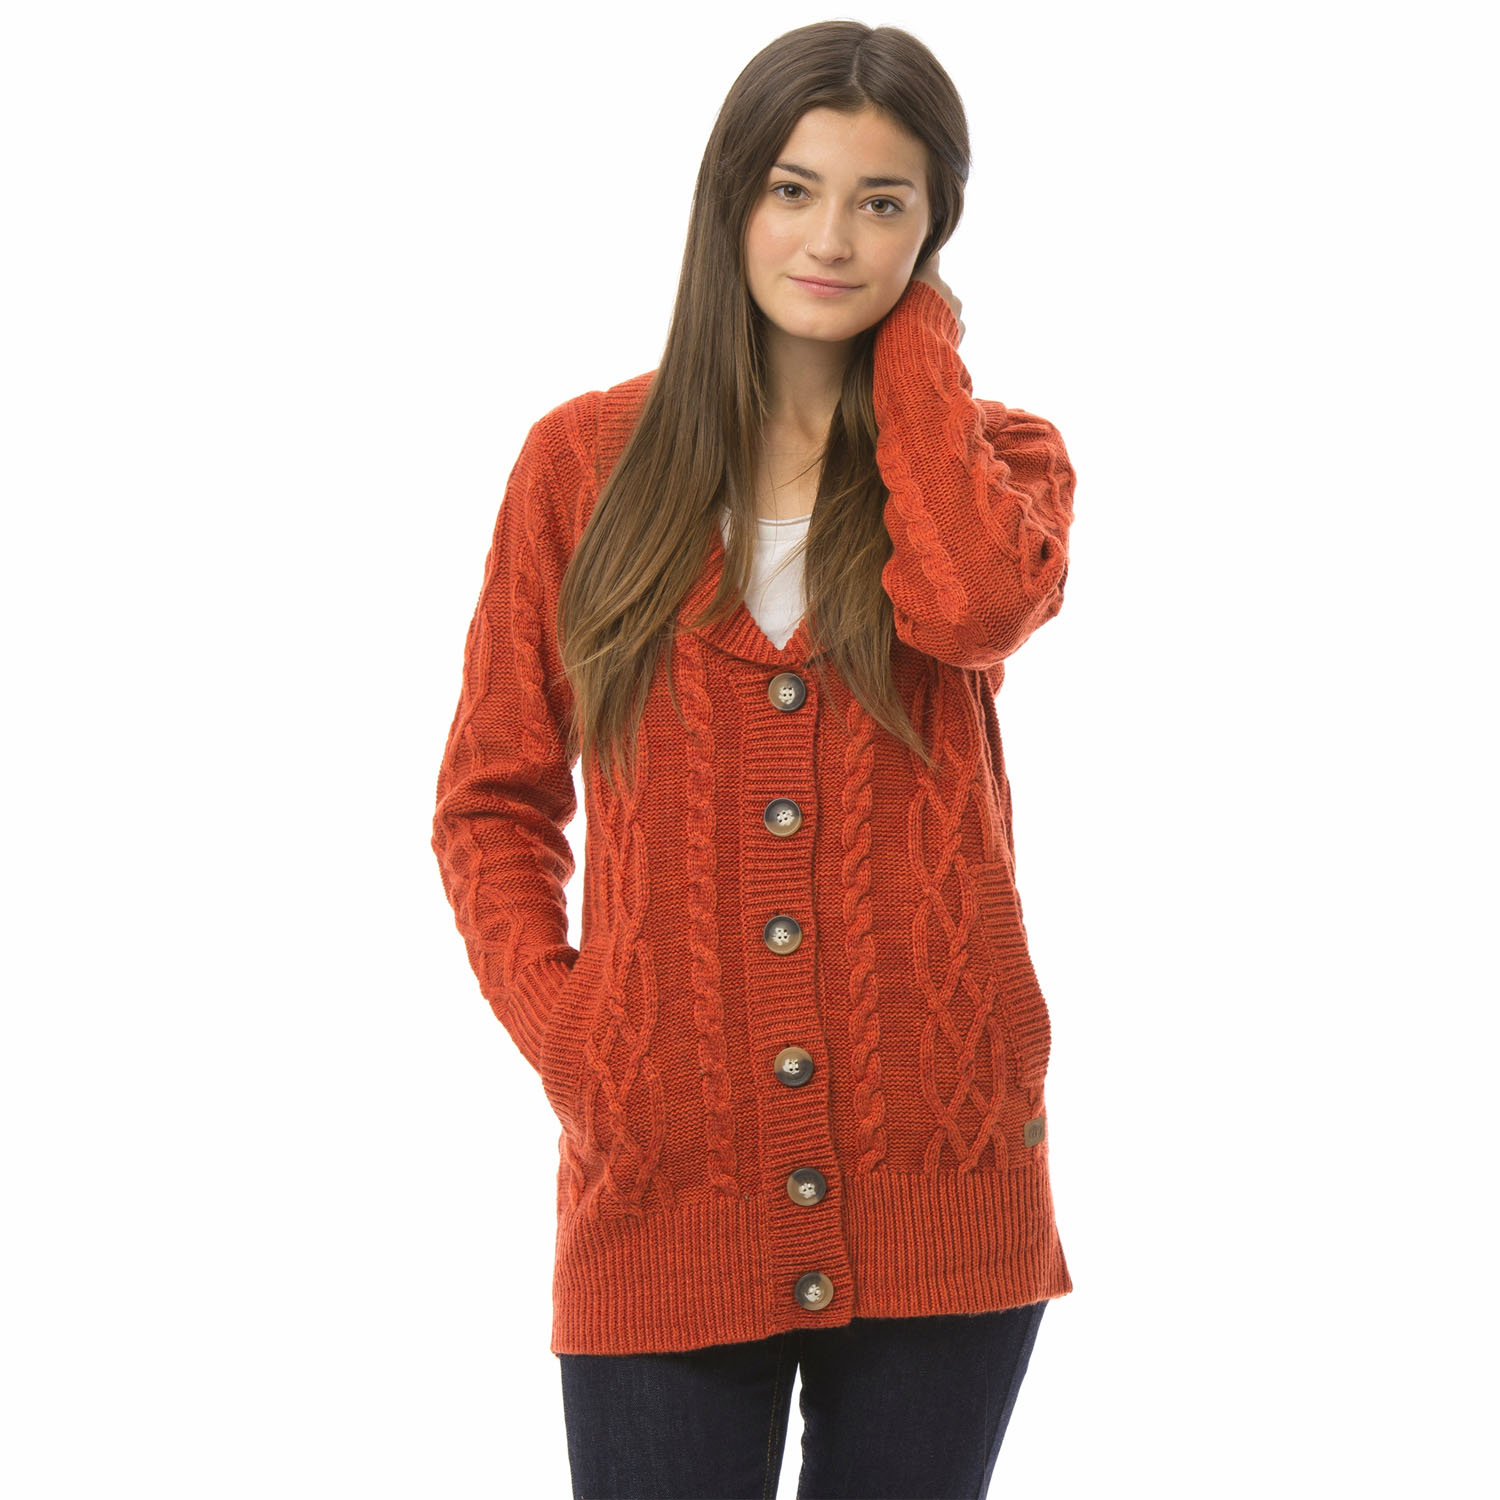 Animal-Womens-Chunky-Knit-Cardigan-Button-Up-Knitted-Winter-Jumper-Sweater